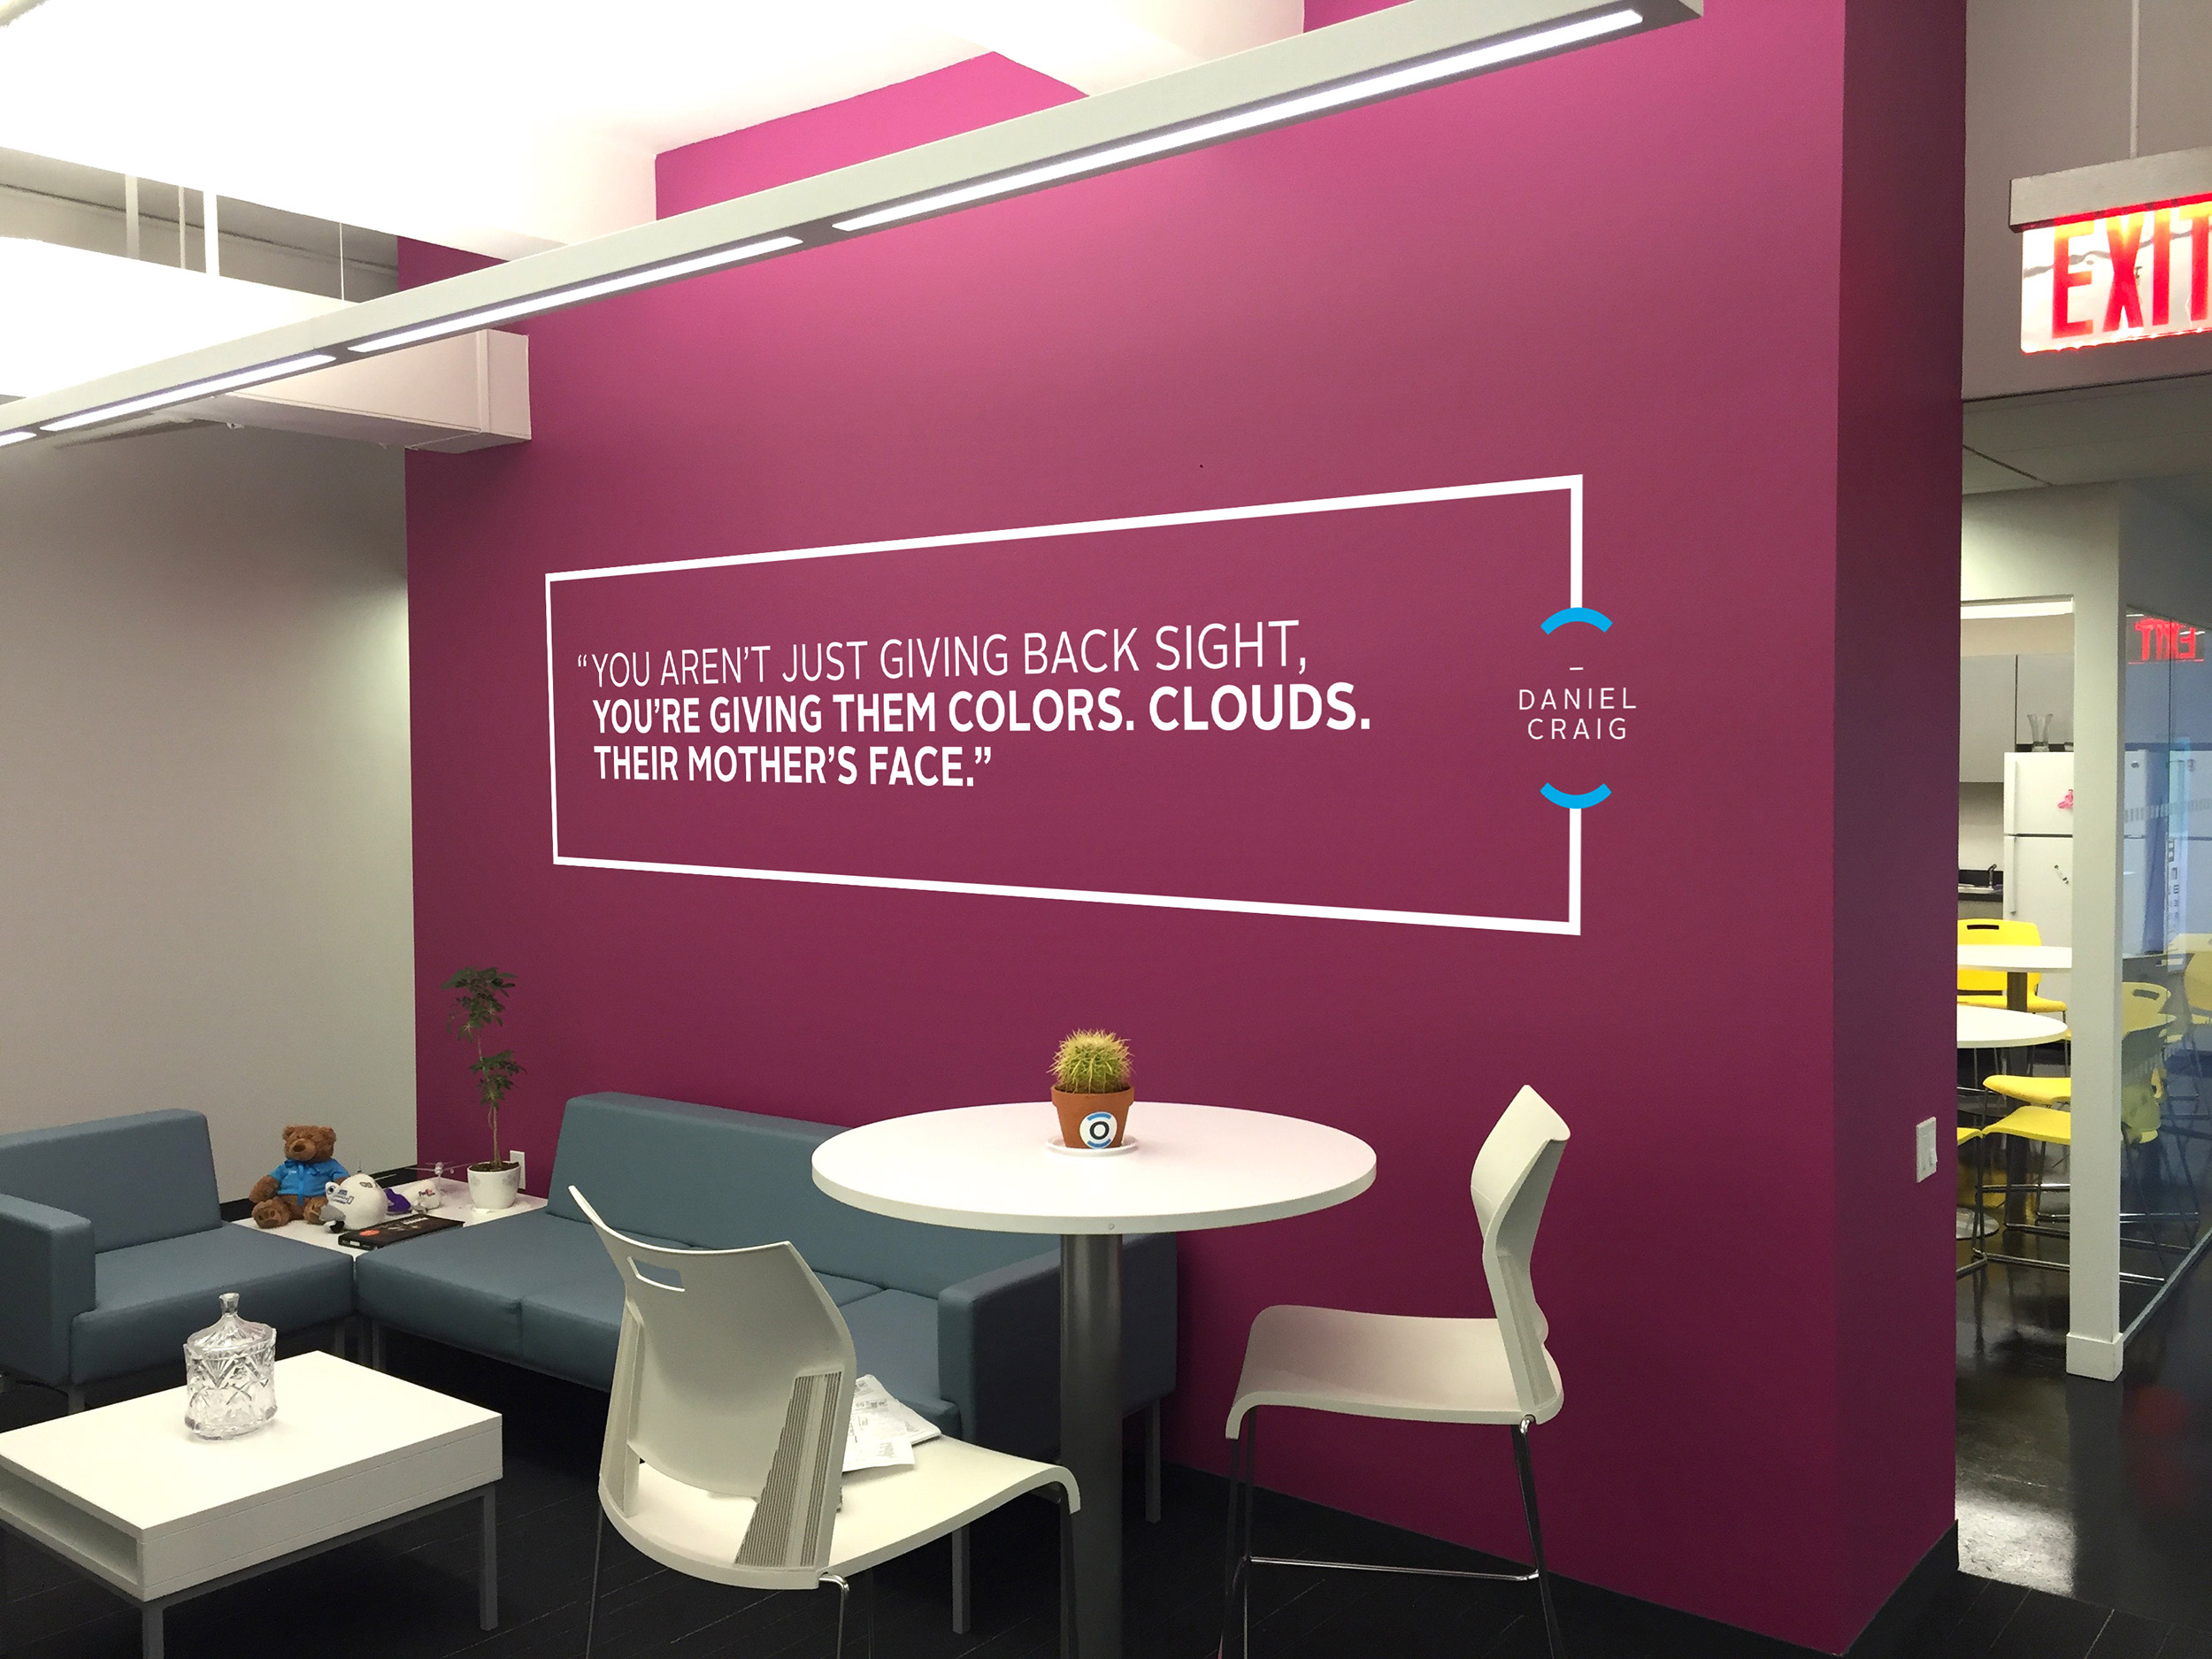 Orbis Office Environmental graphics on wall